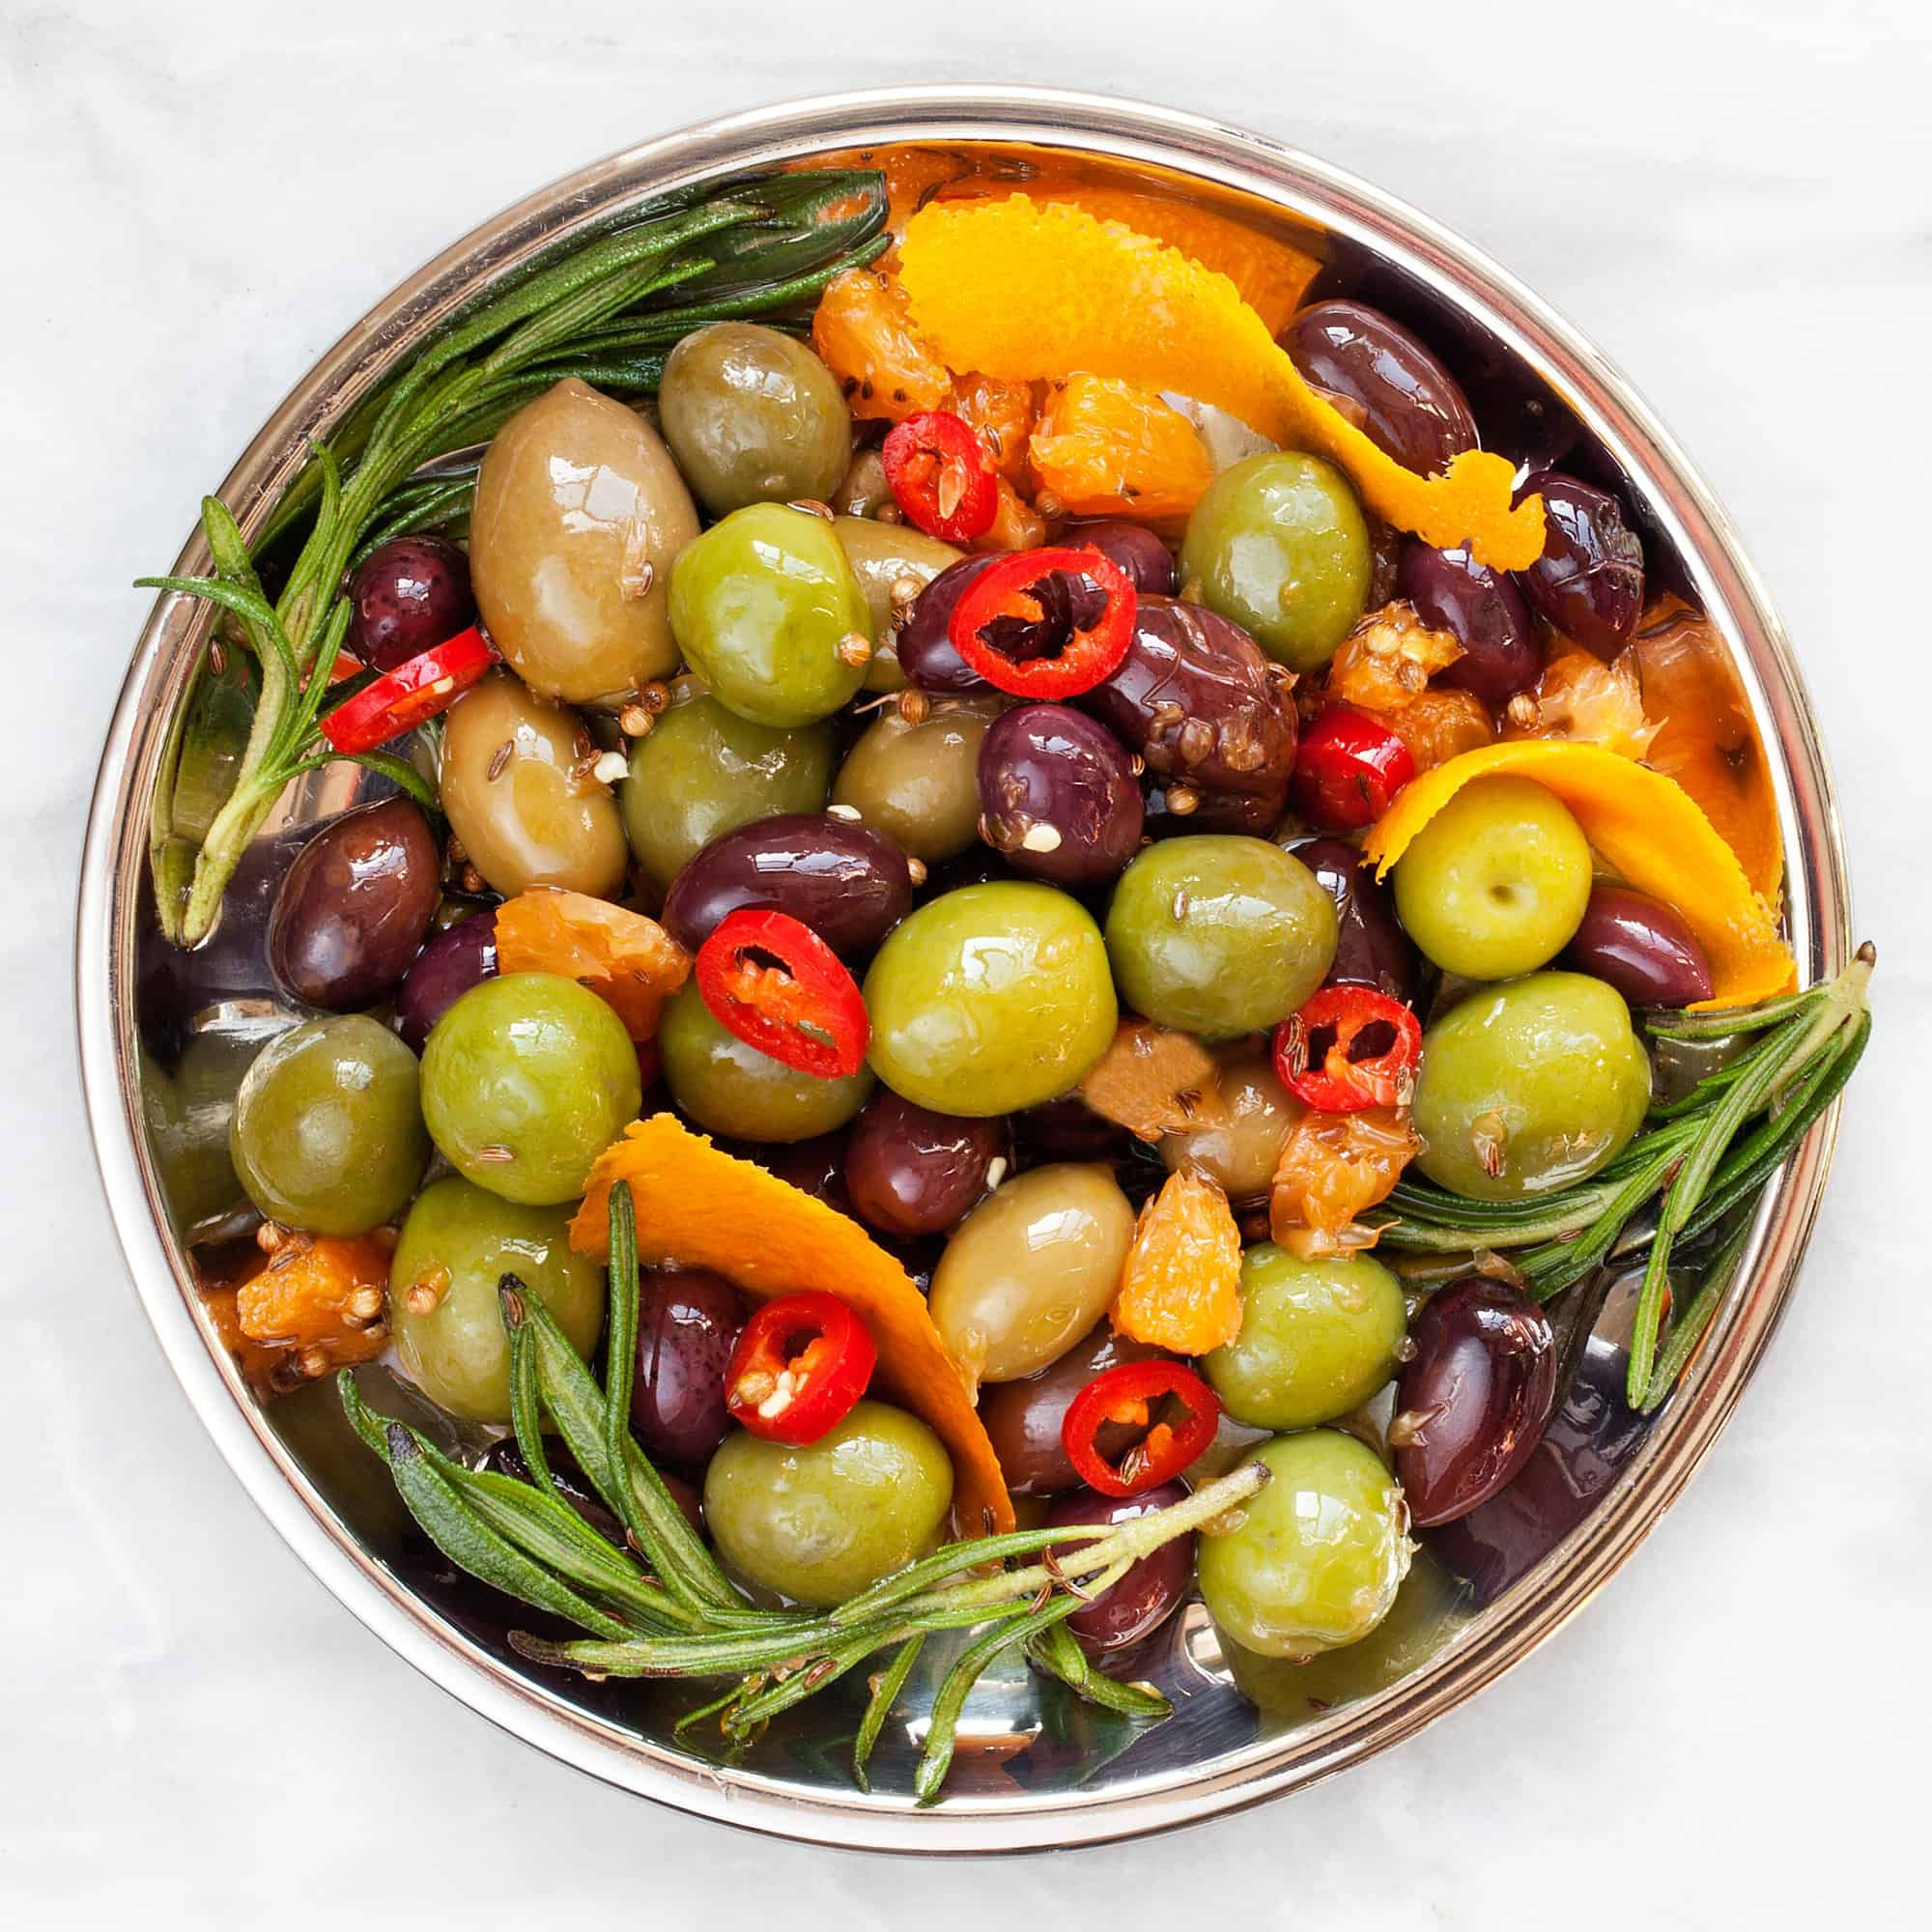 Citrus Marinated Olives With Chilies And Rosemary Last Ingredient Recipe Marinated Olives Olive Snack Whole Food Diet